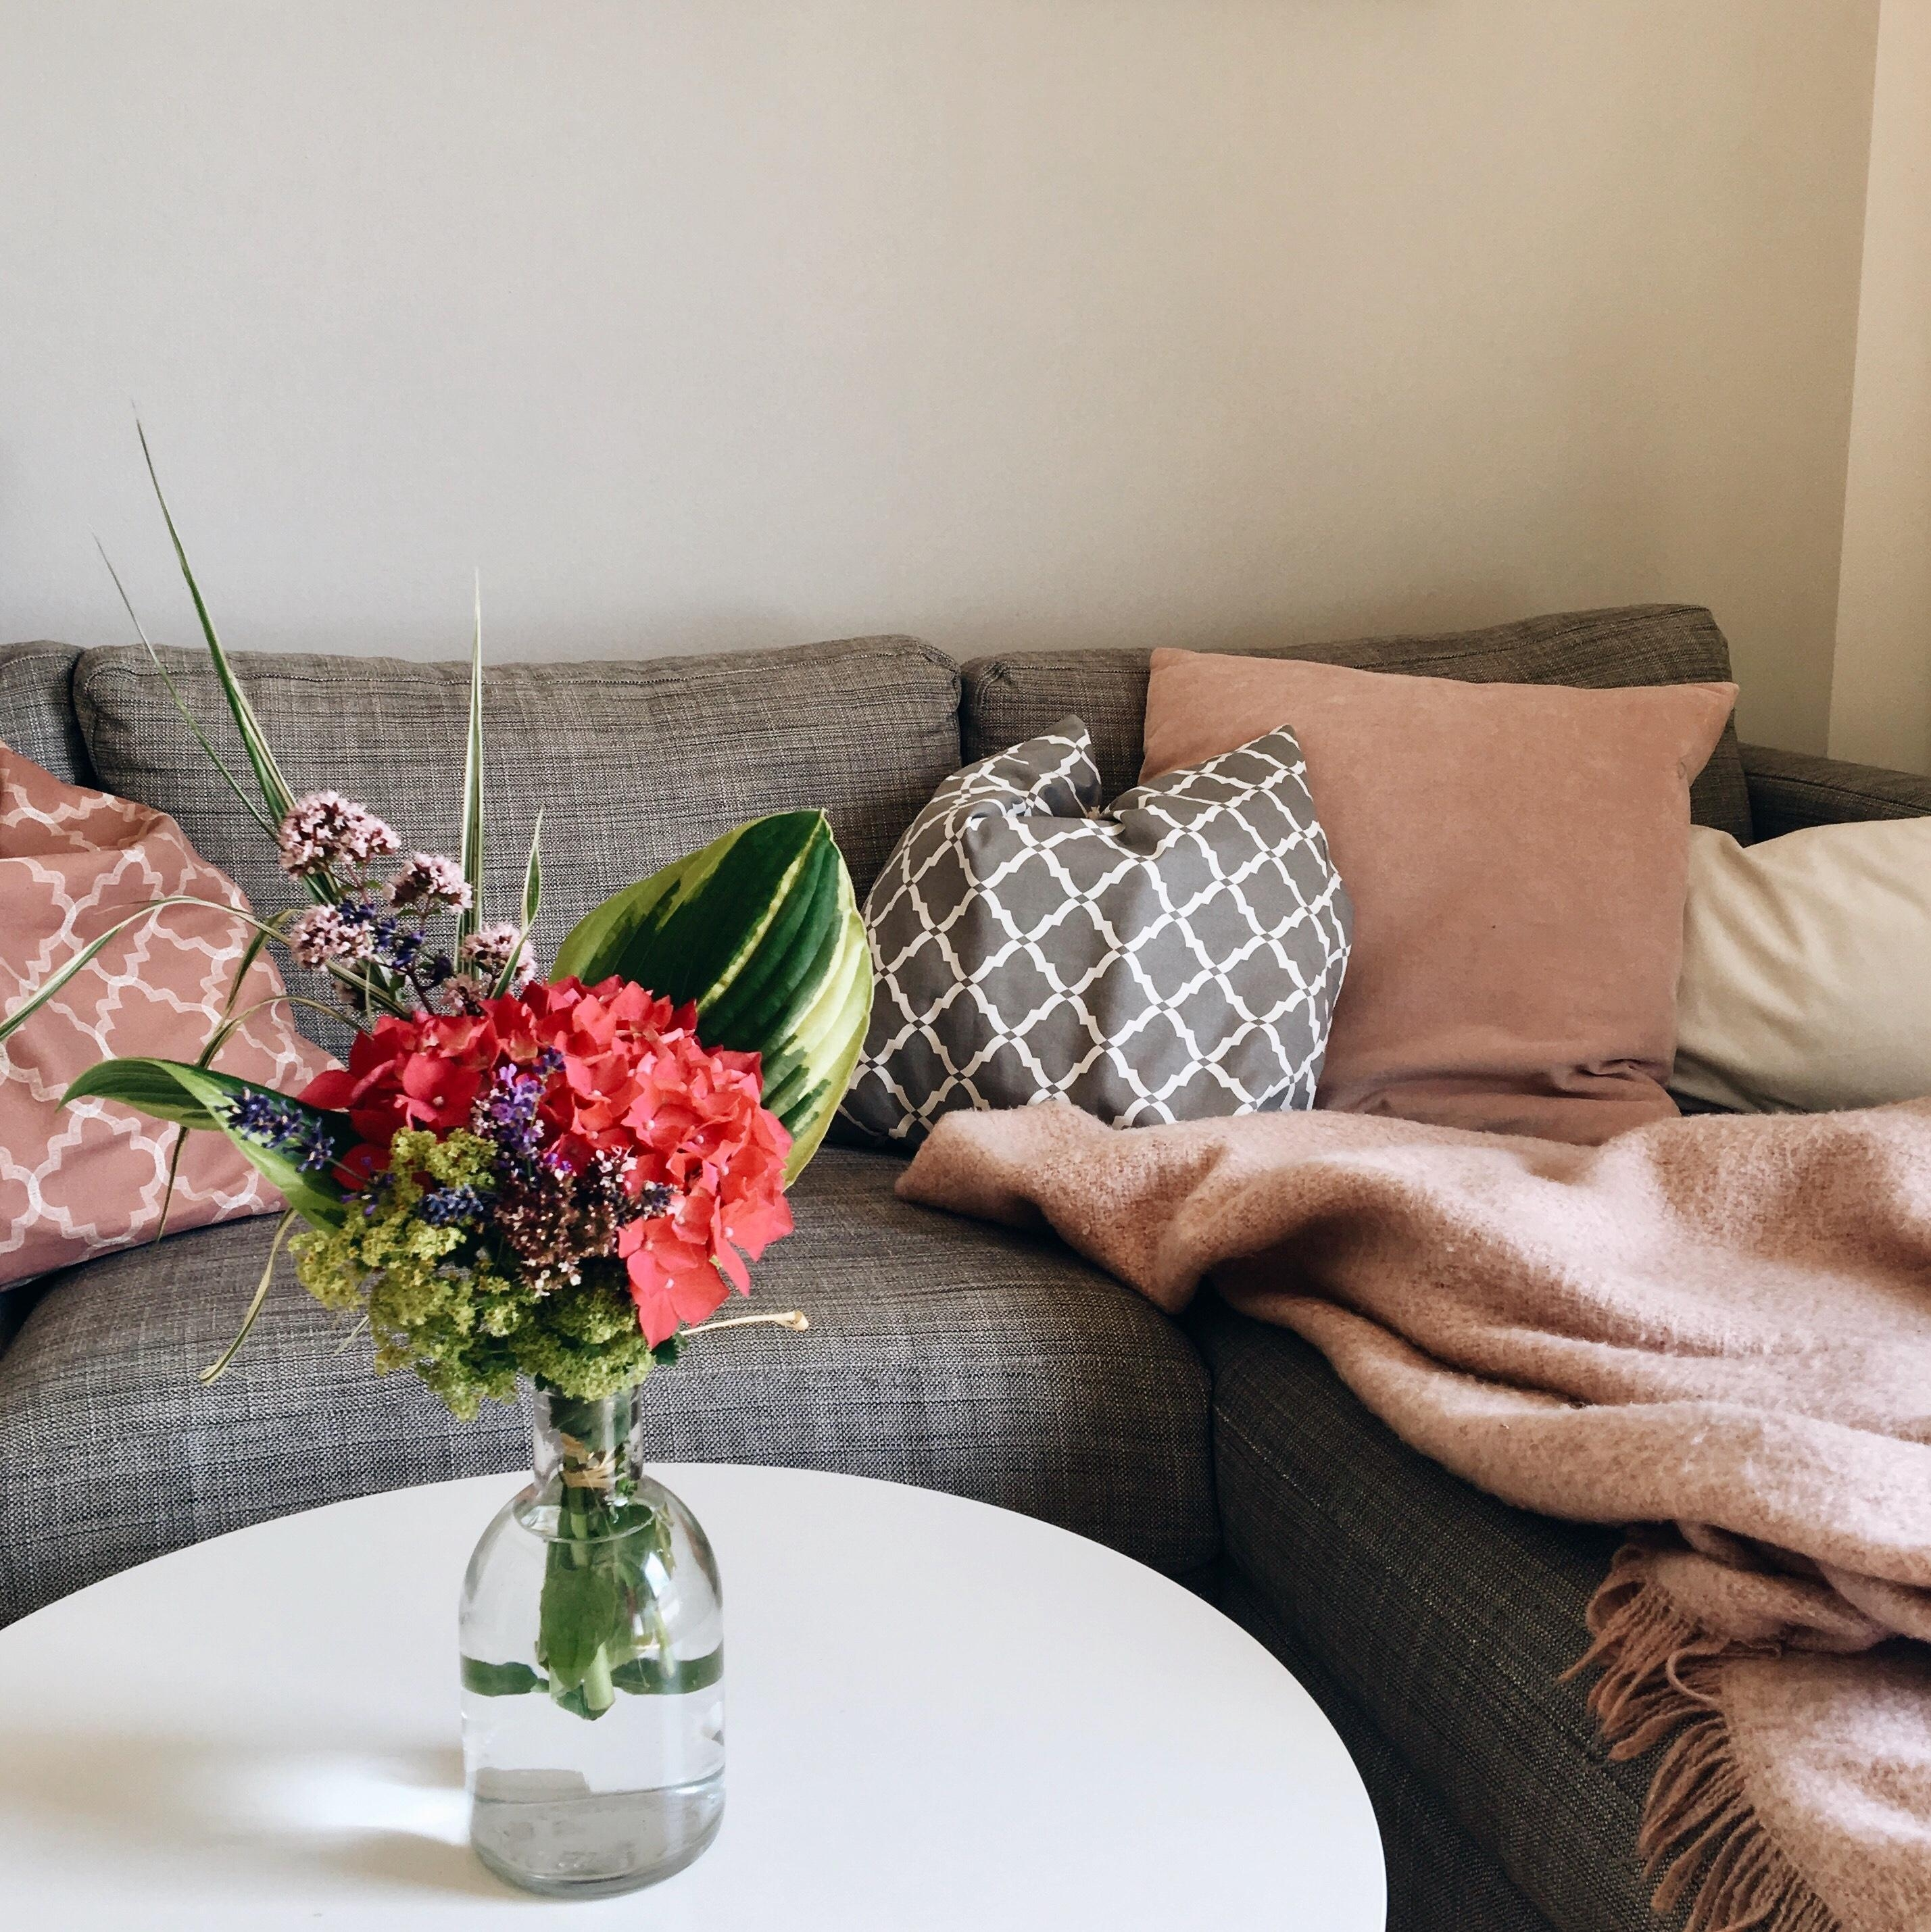 #fridayvibes #living #couch #flowers #livingroom #cozy #happyhome